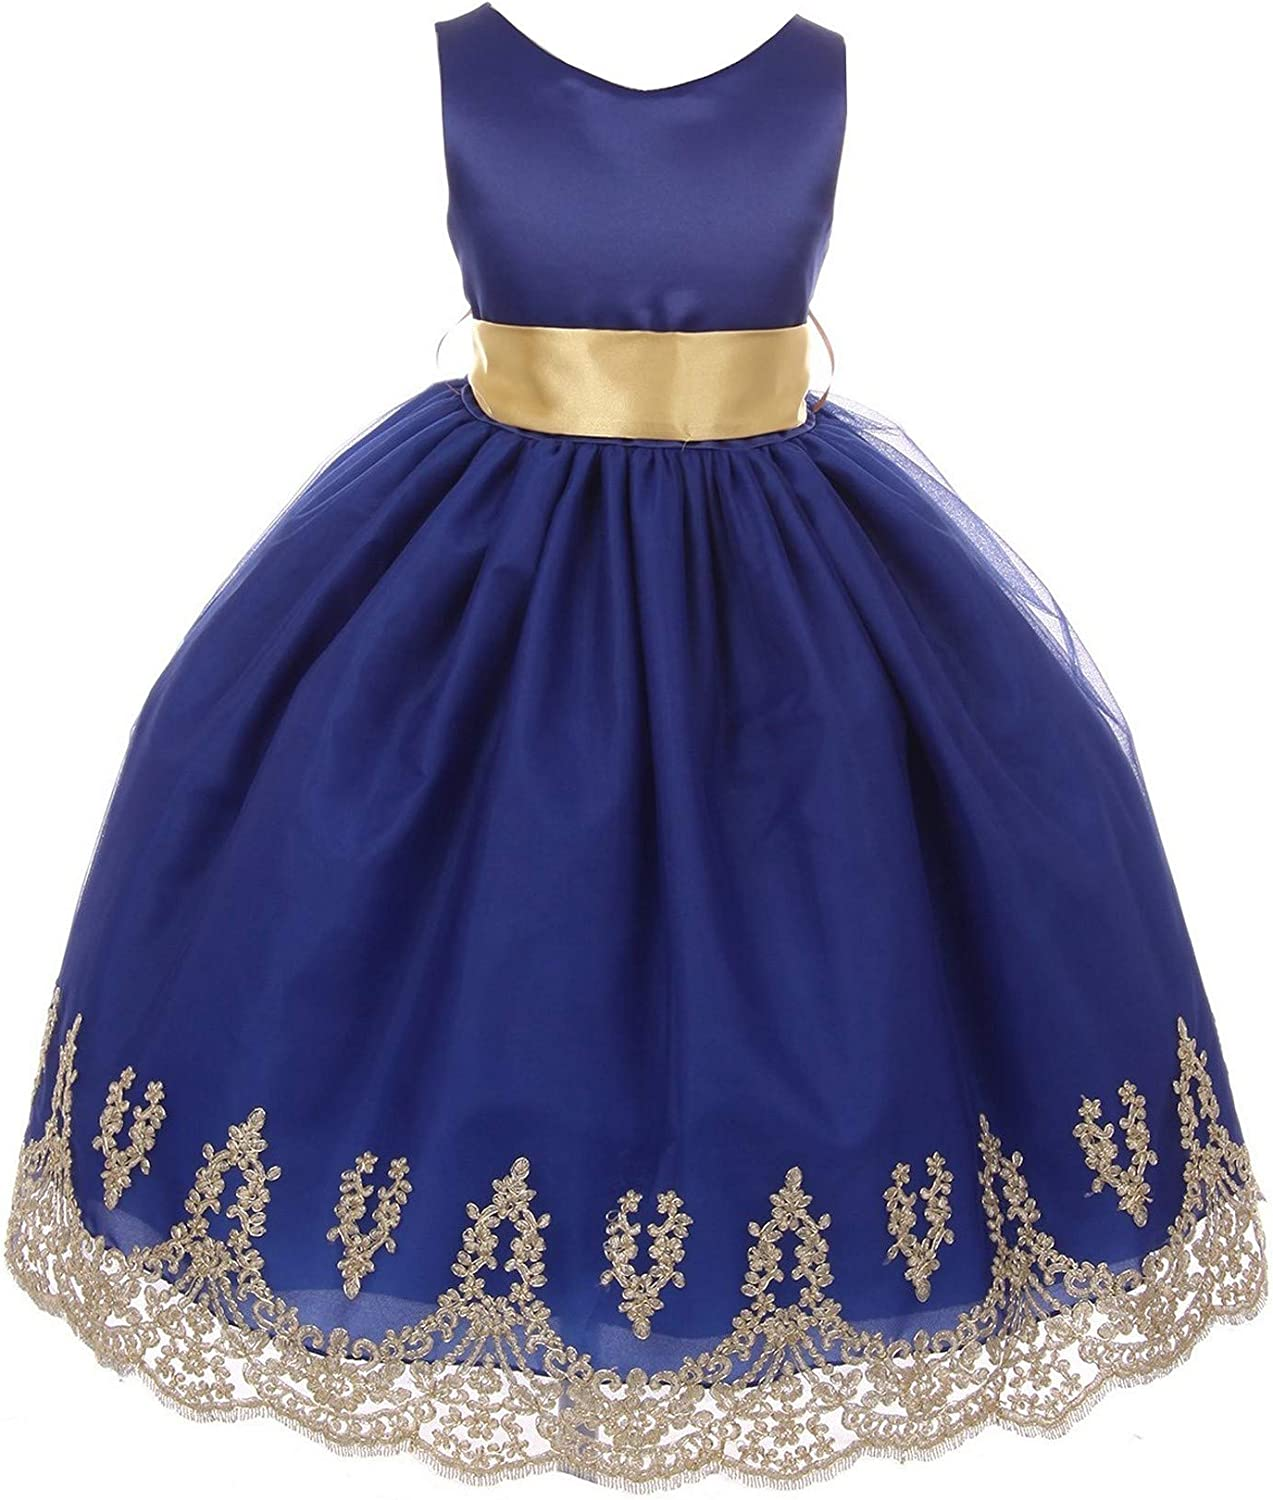 Chic Baby Little Girls Royal Blue Gold Lace Embroidered Flower Girl Dress  5-5